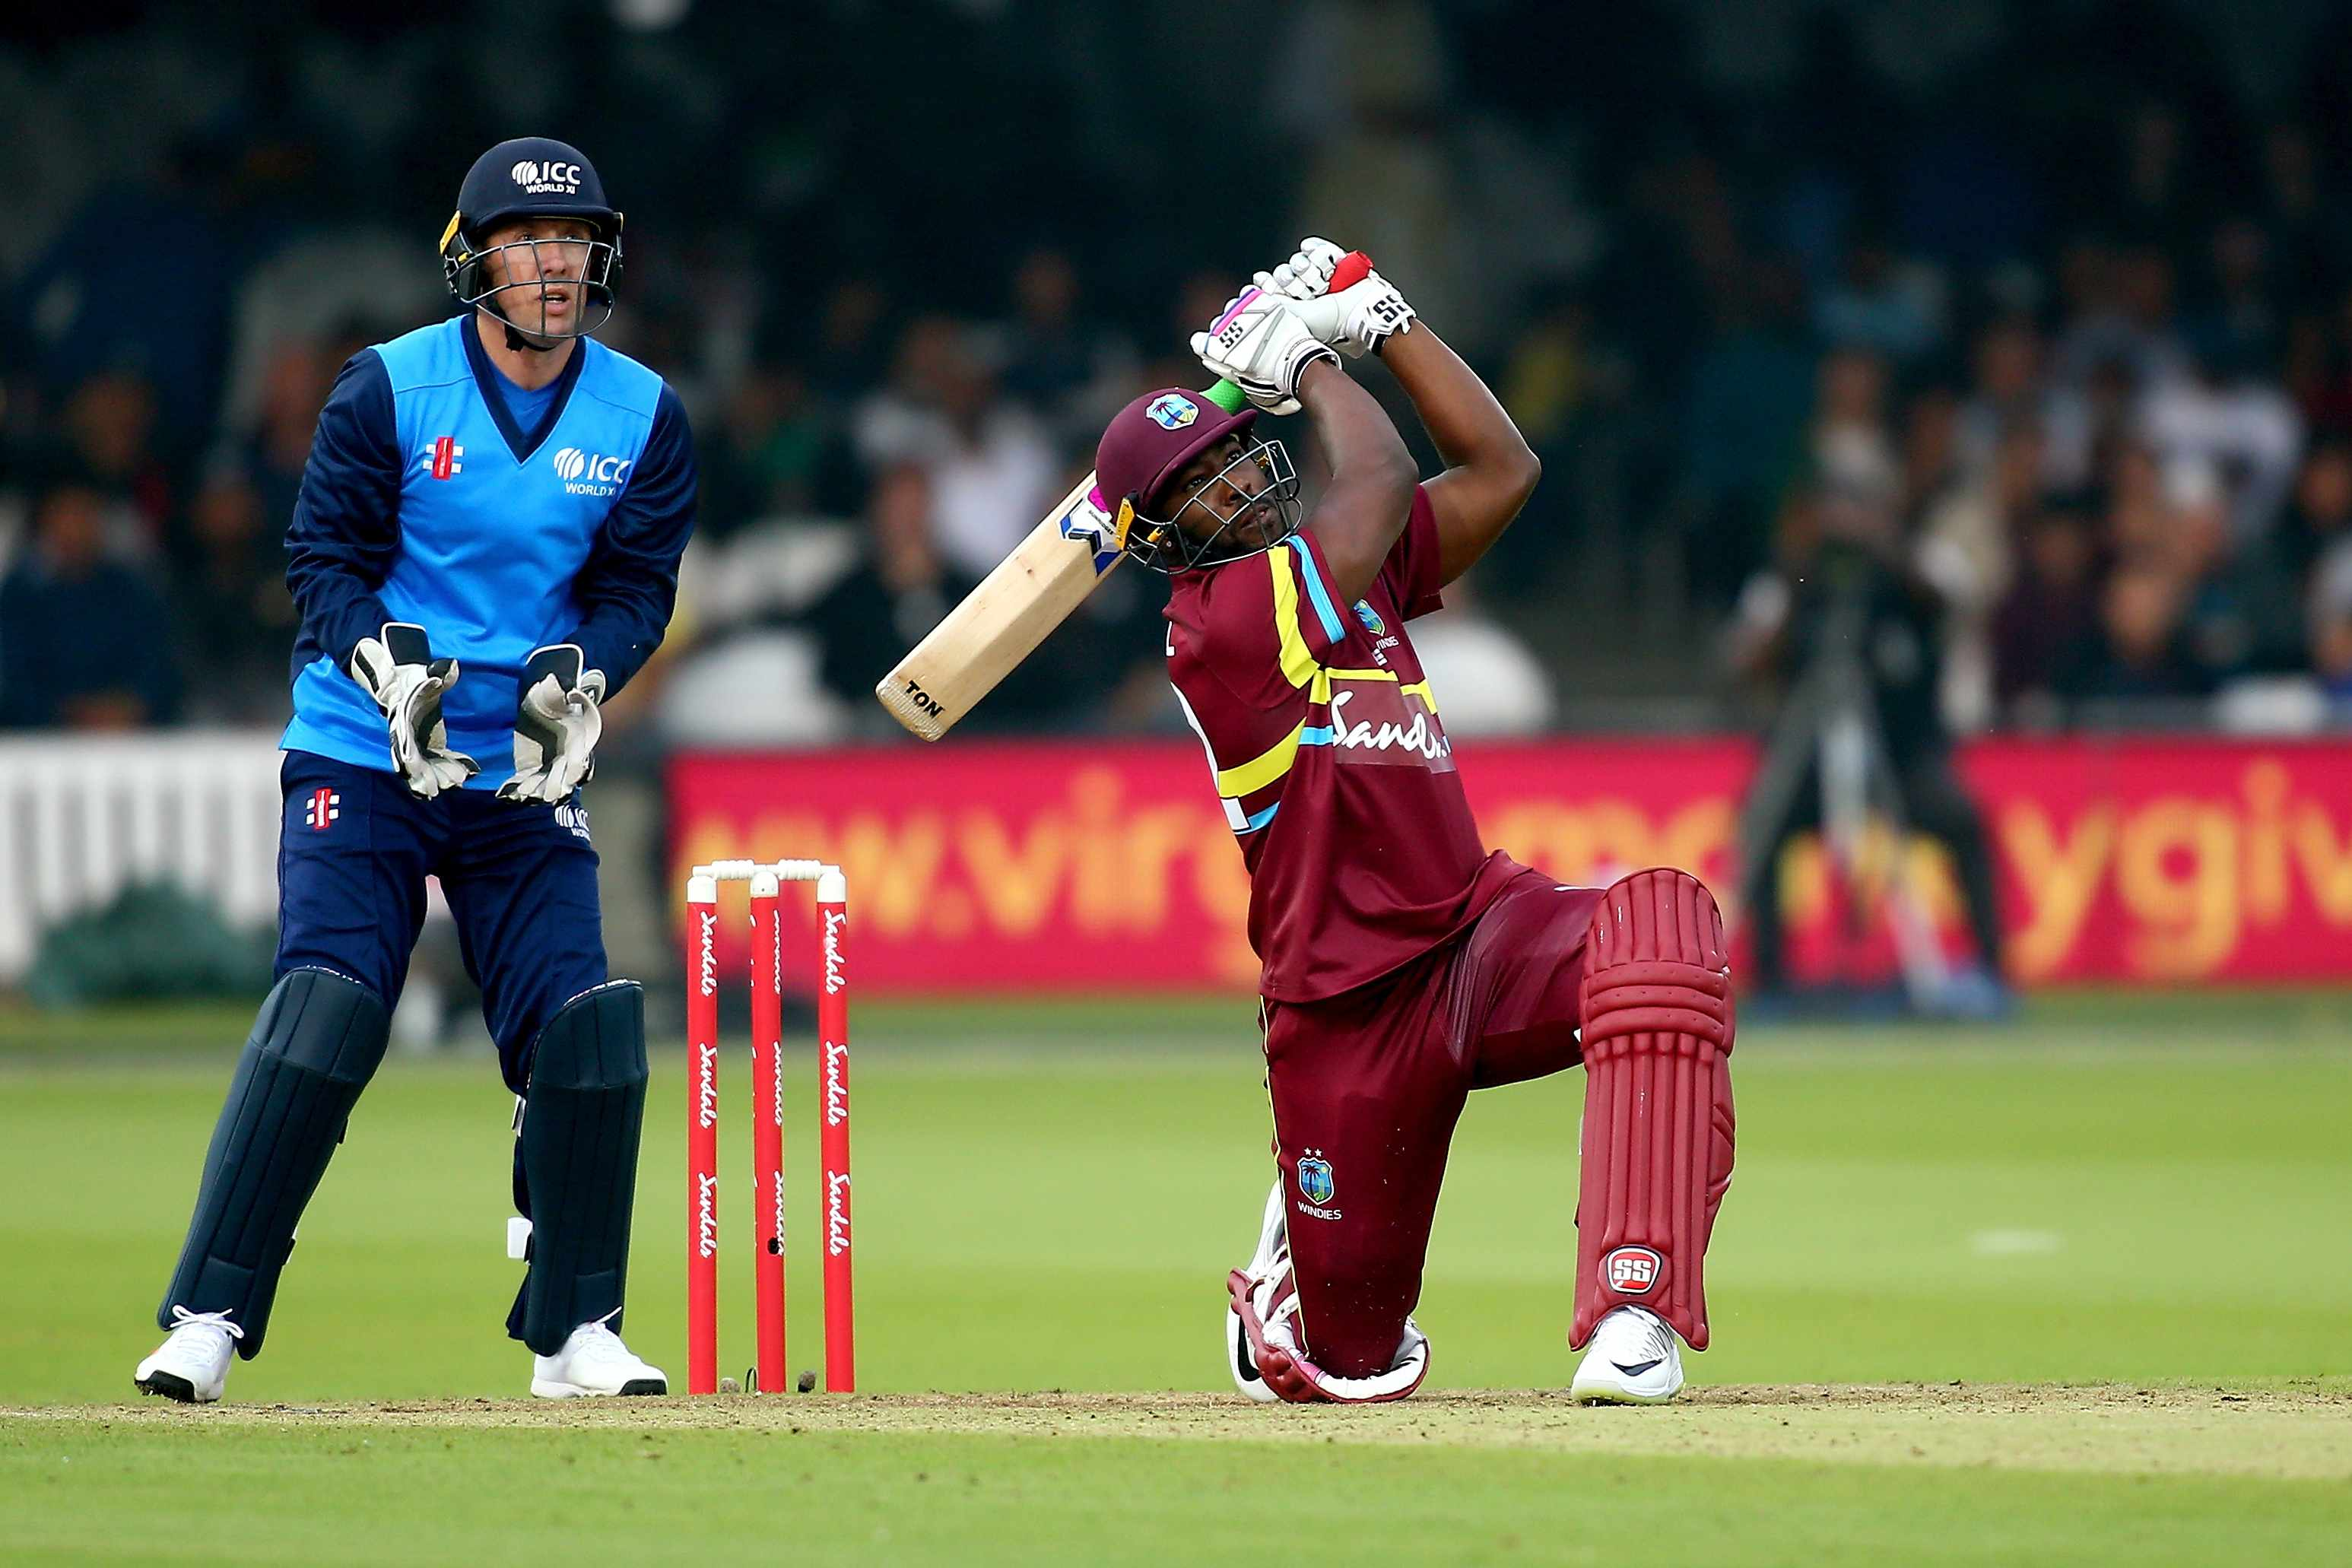 LONDON, ENGLAND - MAY 31:  Andre Russell of West Indies bats during the T20 match between ICC World XI and West Indies at Lord's Cricket Ground on May 31, 2018 in London, England.  (Photo by Jordan Mansfield/Getty Images)